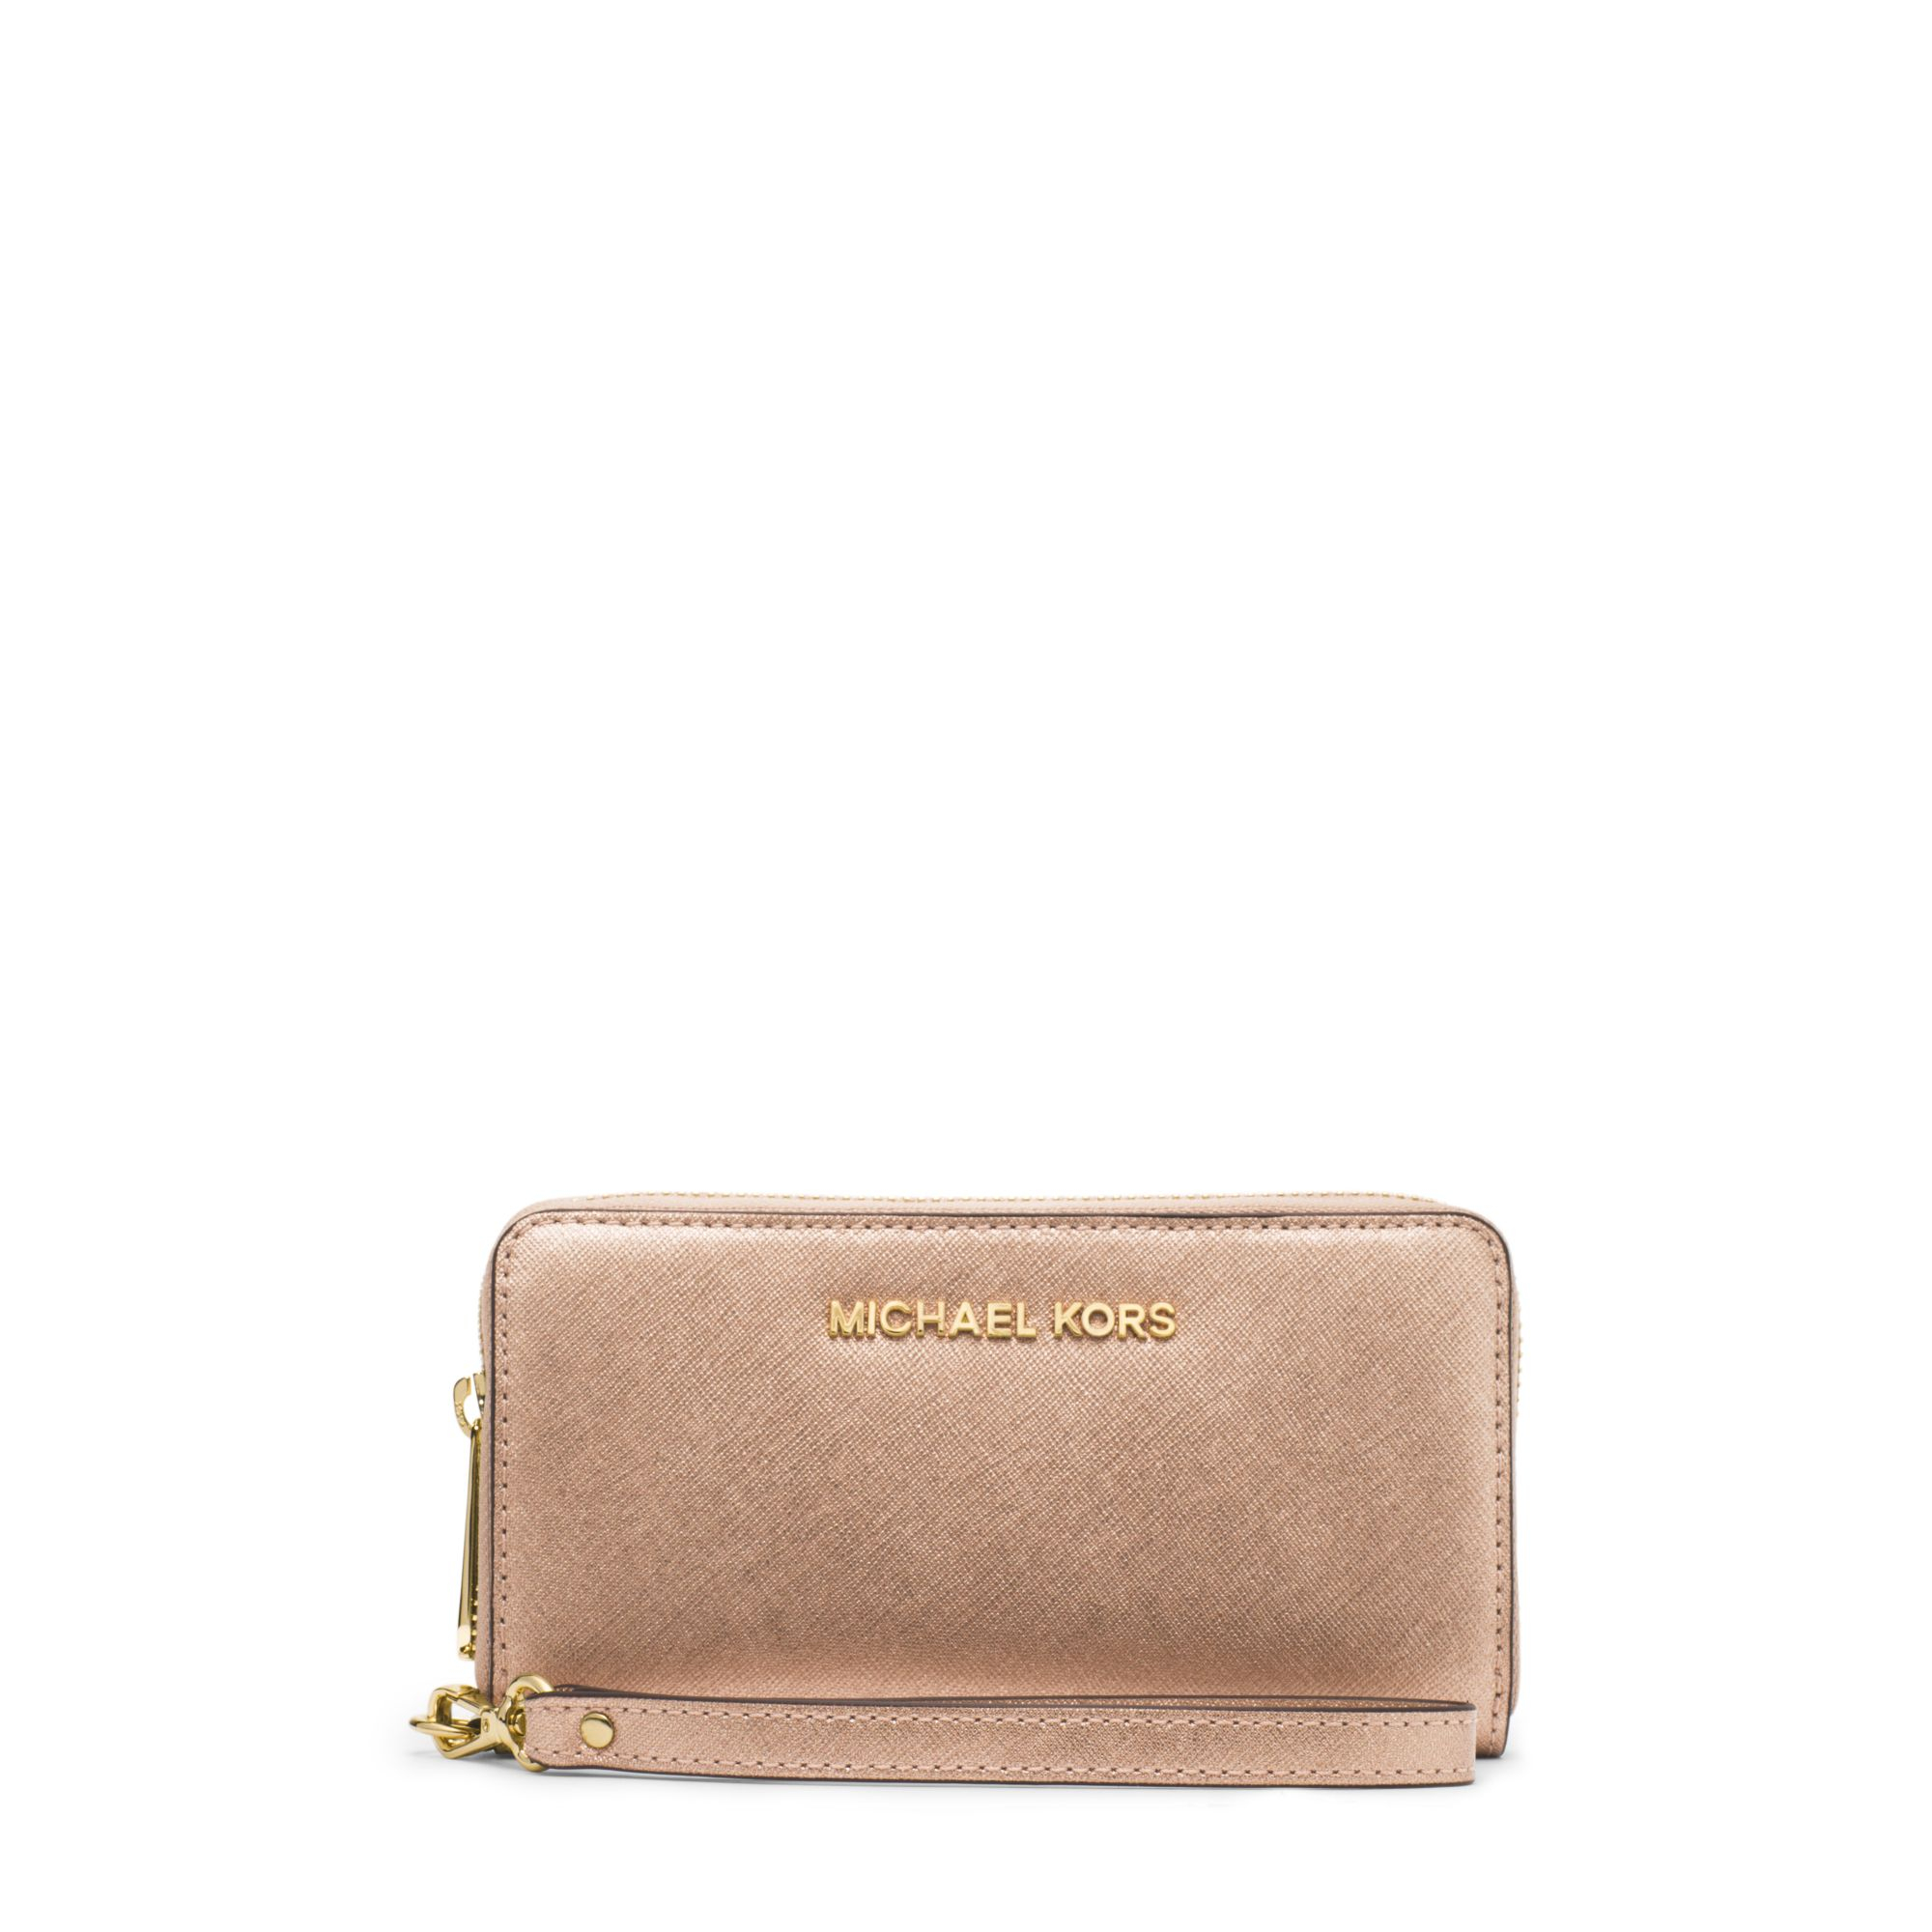 ... Michael kors Jet Set Travel Large Metallic Leather Smartphon